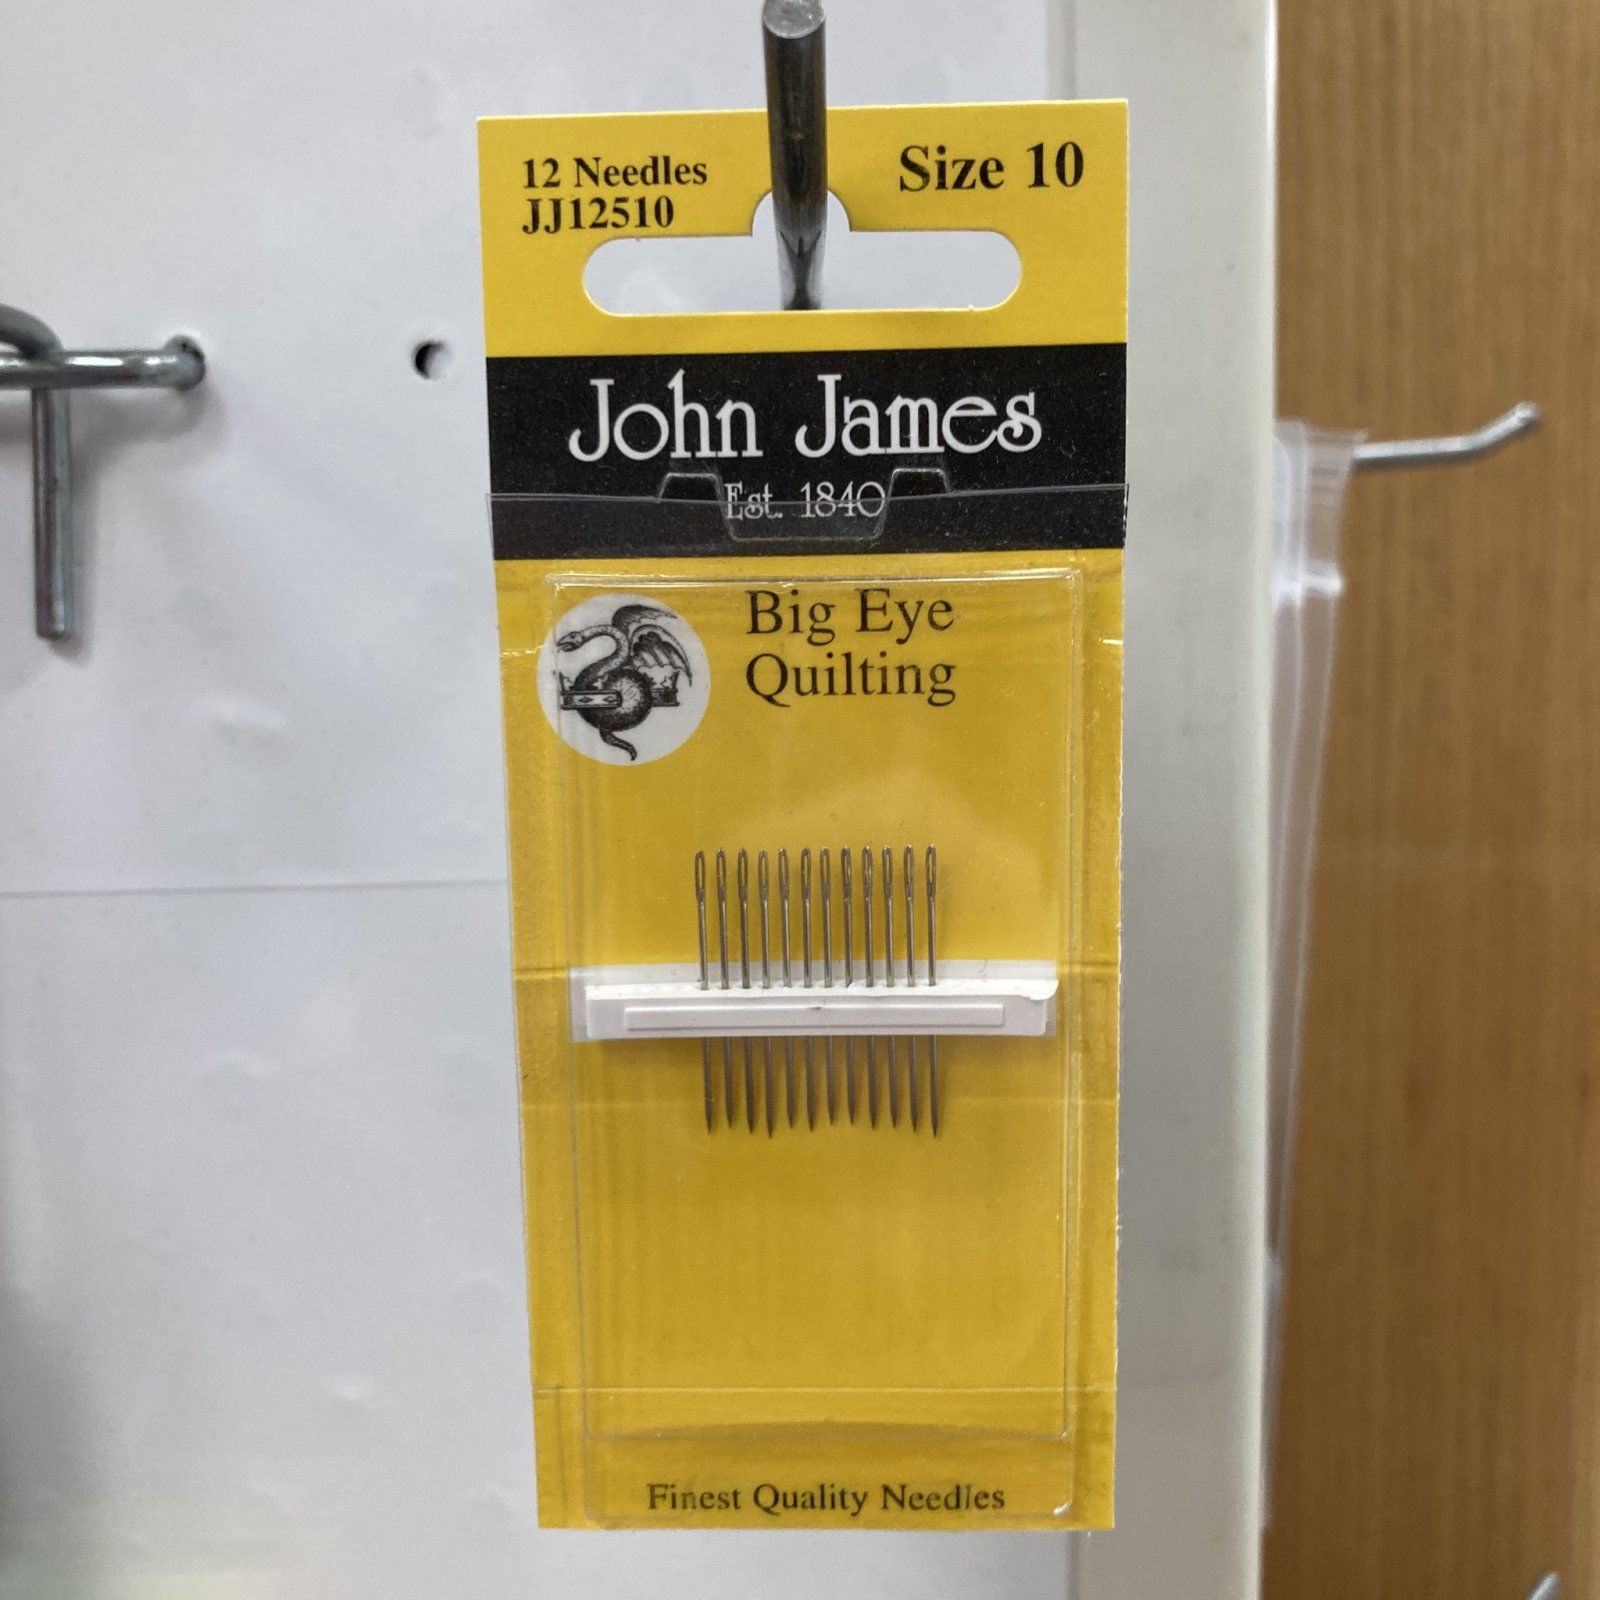 John James Big Eye Quilting Needles - Size 10 - 10ct